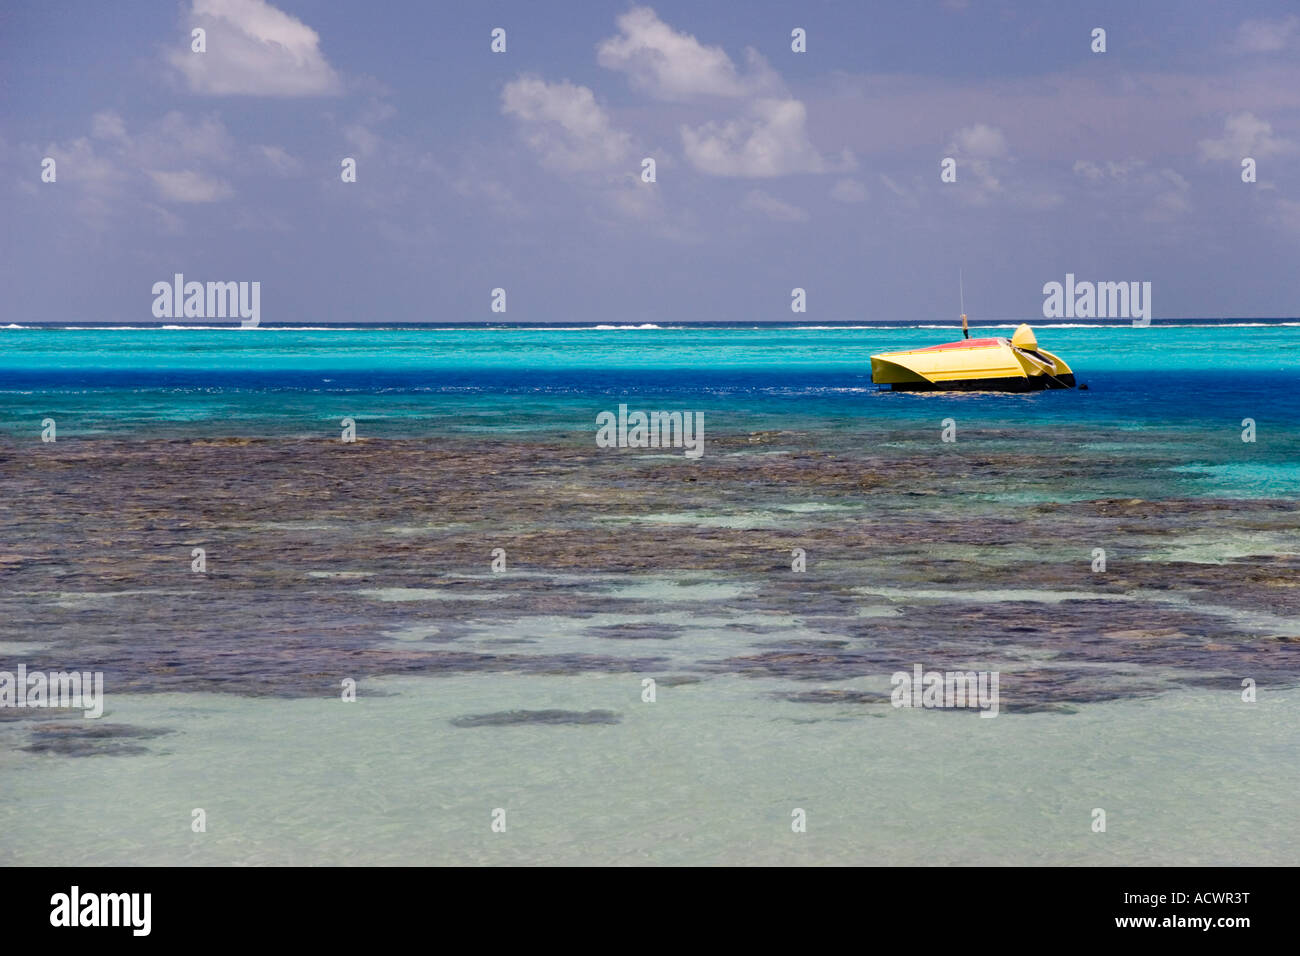 Fishing Boat In The Coral Reef Lagoon The Tropical Island Of Moorea French Polynesia